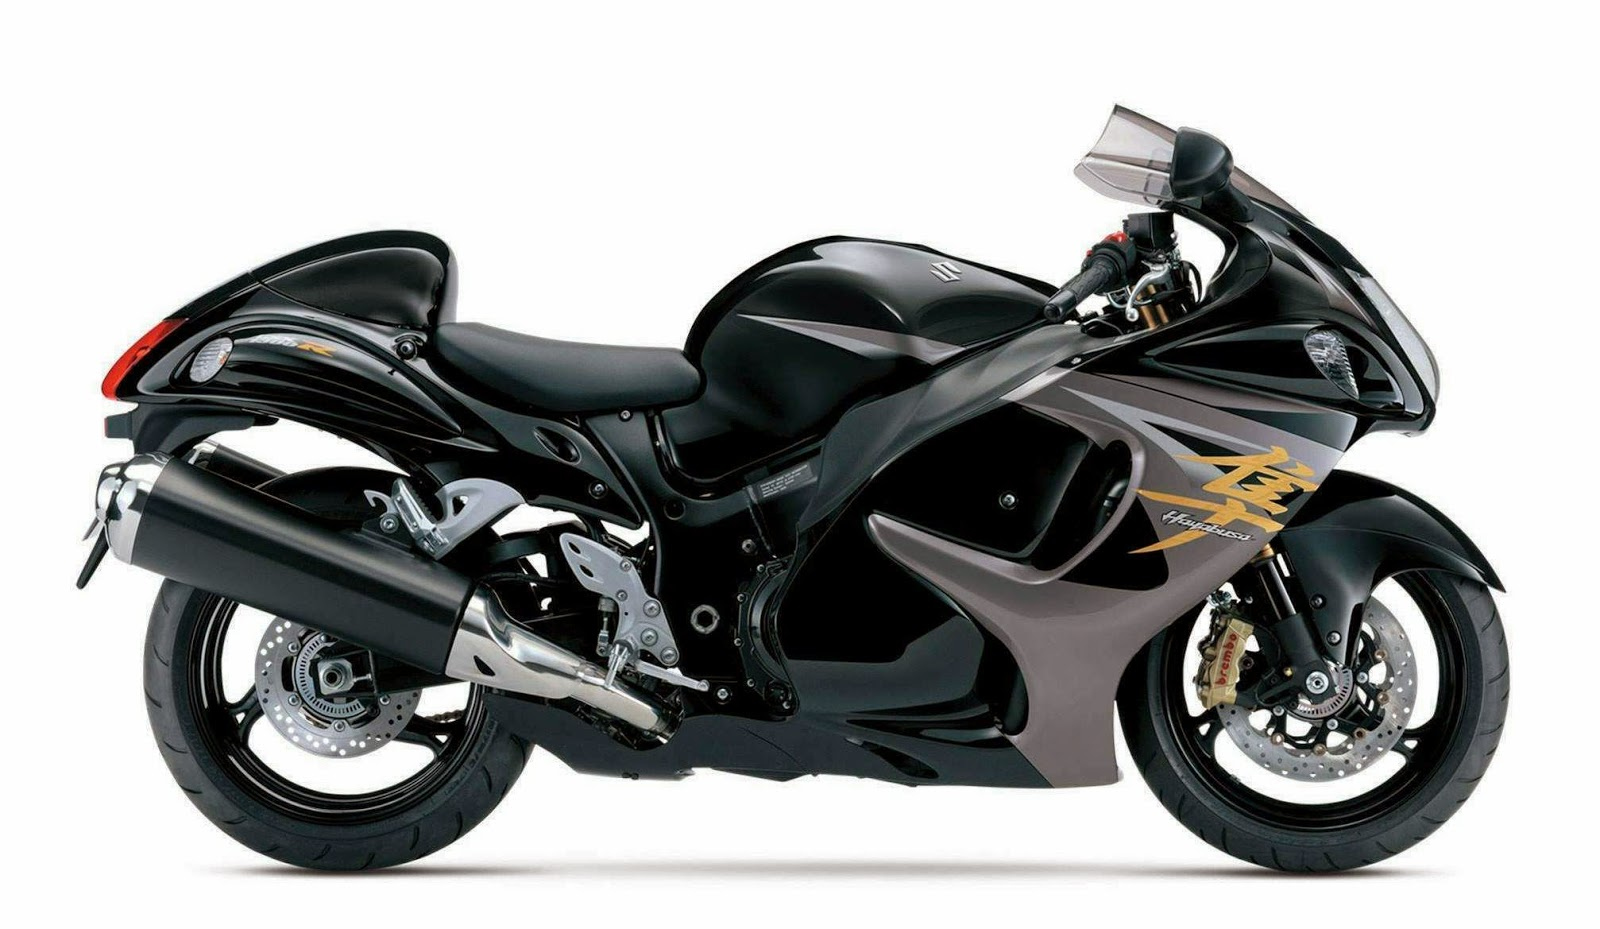 Top 5 Fastest Bikes in The World 2014